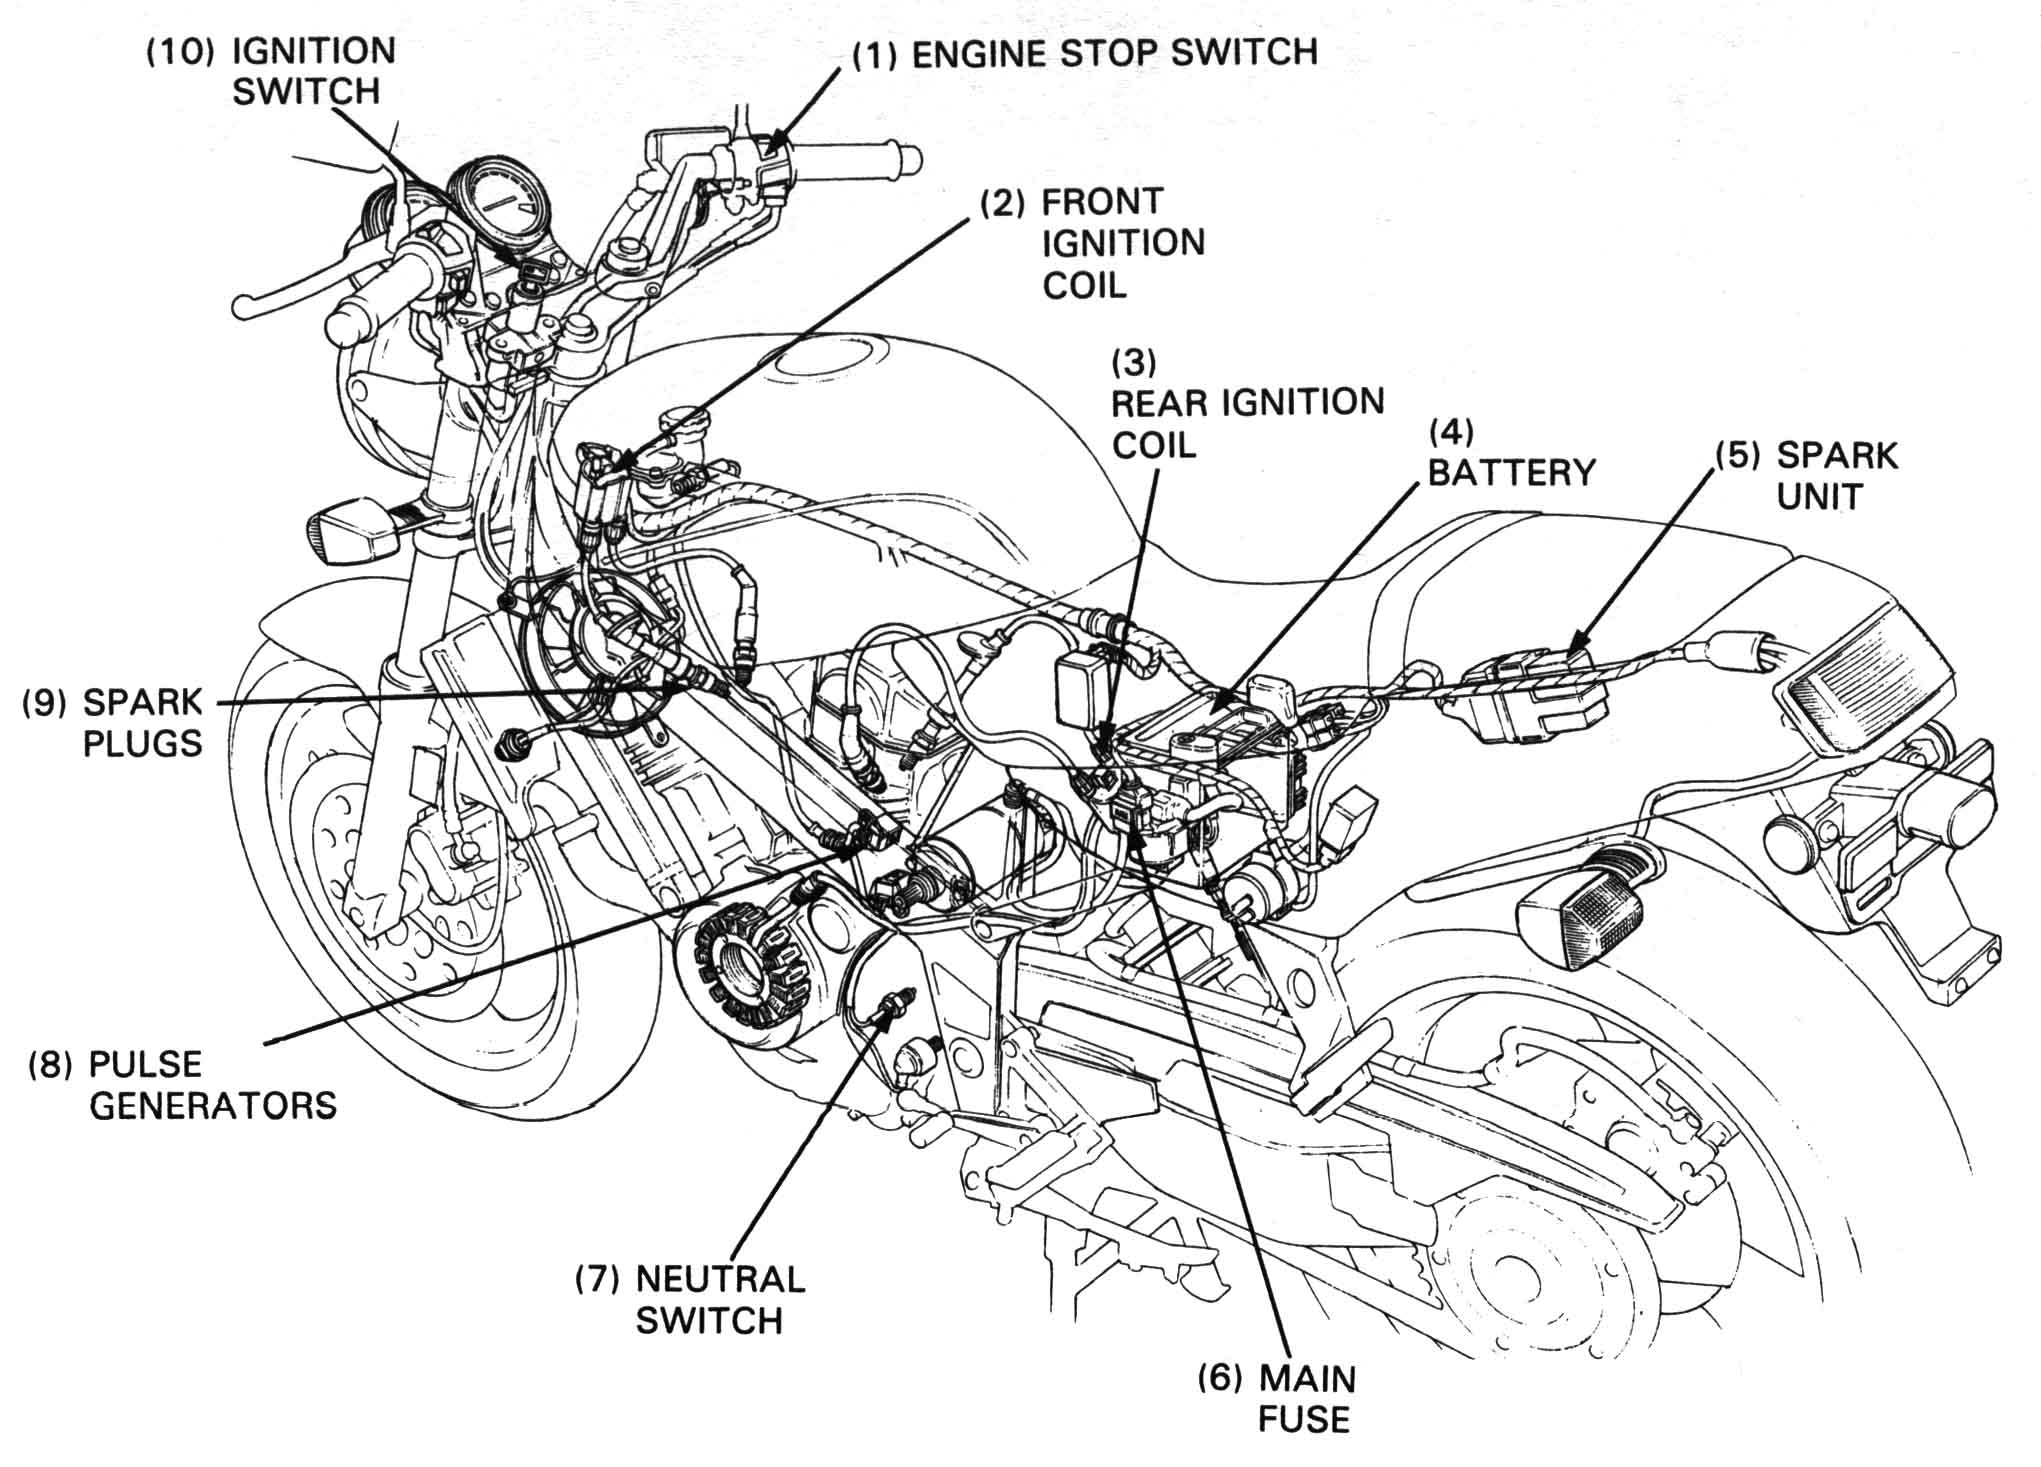 Honda Fire Diagram Content Resource Of Wiring Generator Schematics Nt650 Service Manual Section 16 Ignition System Rh Hawkworks Net Dashboard Warning Lights Symbols